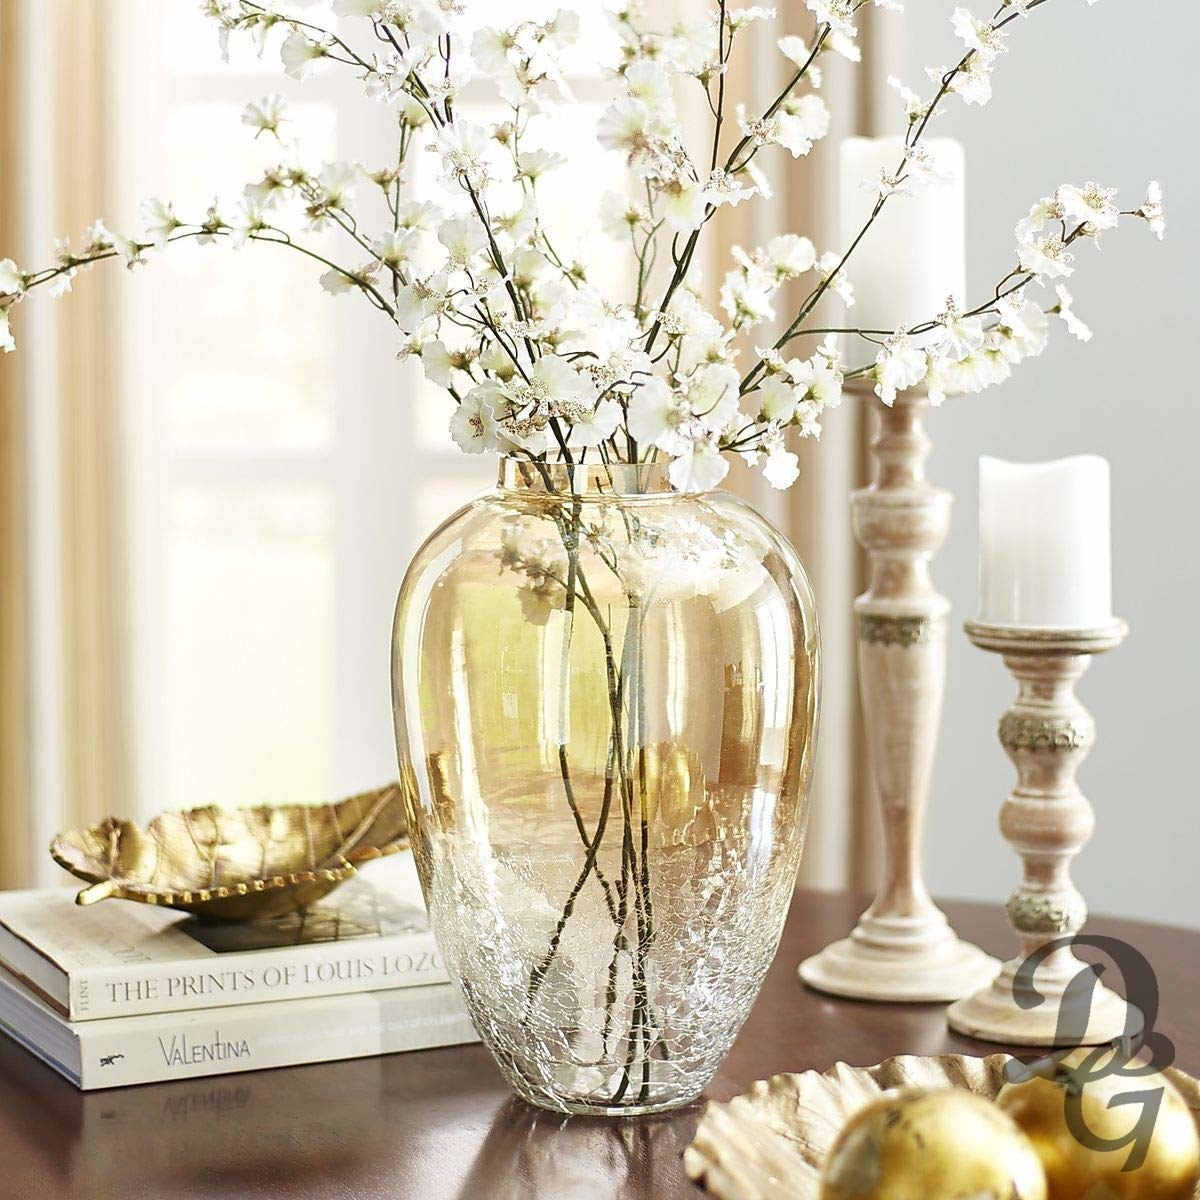 A crackled glass vase with some white flowers kept in it